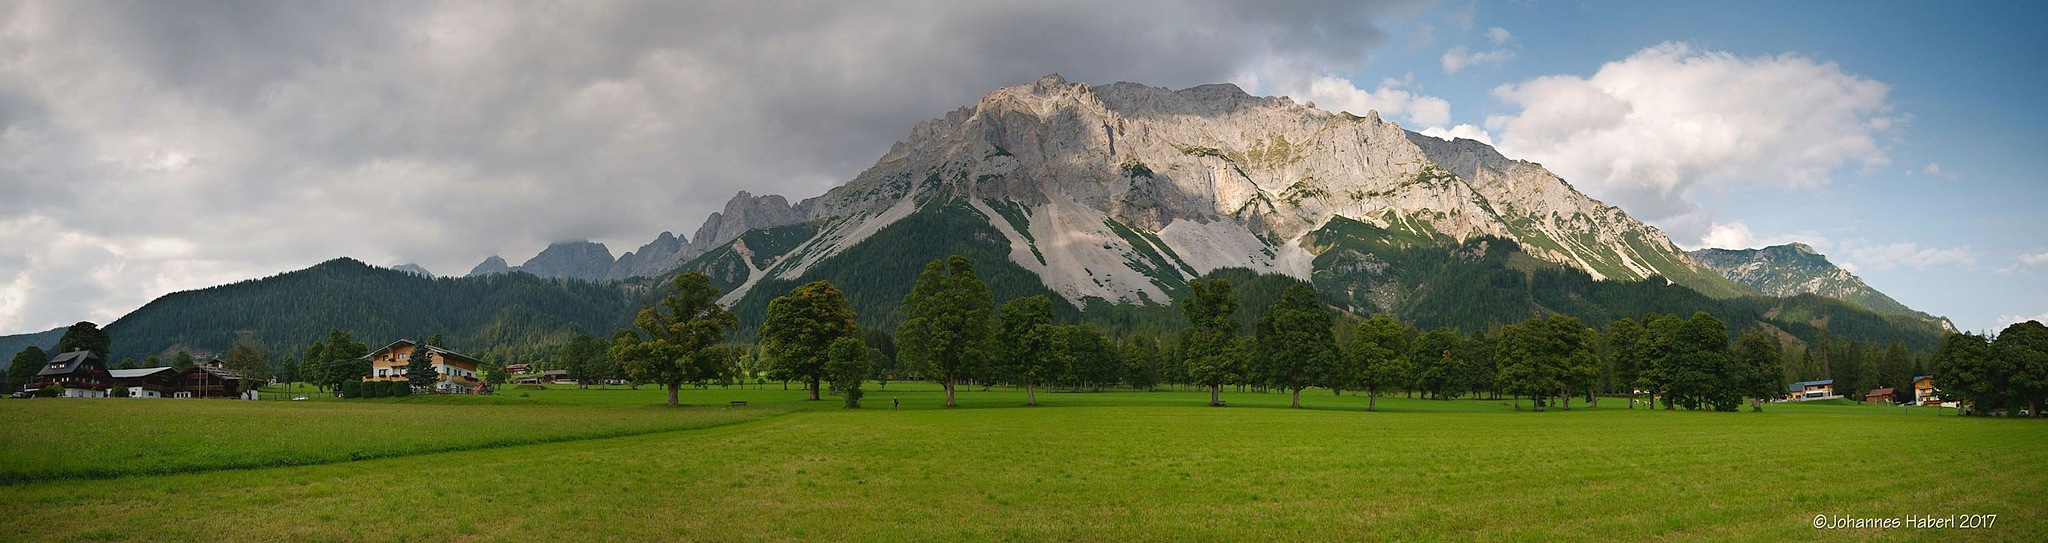 Ramsau - view to the north by Johannes Haberl